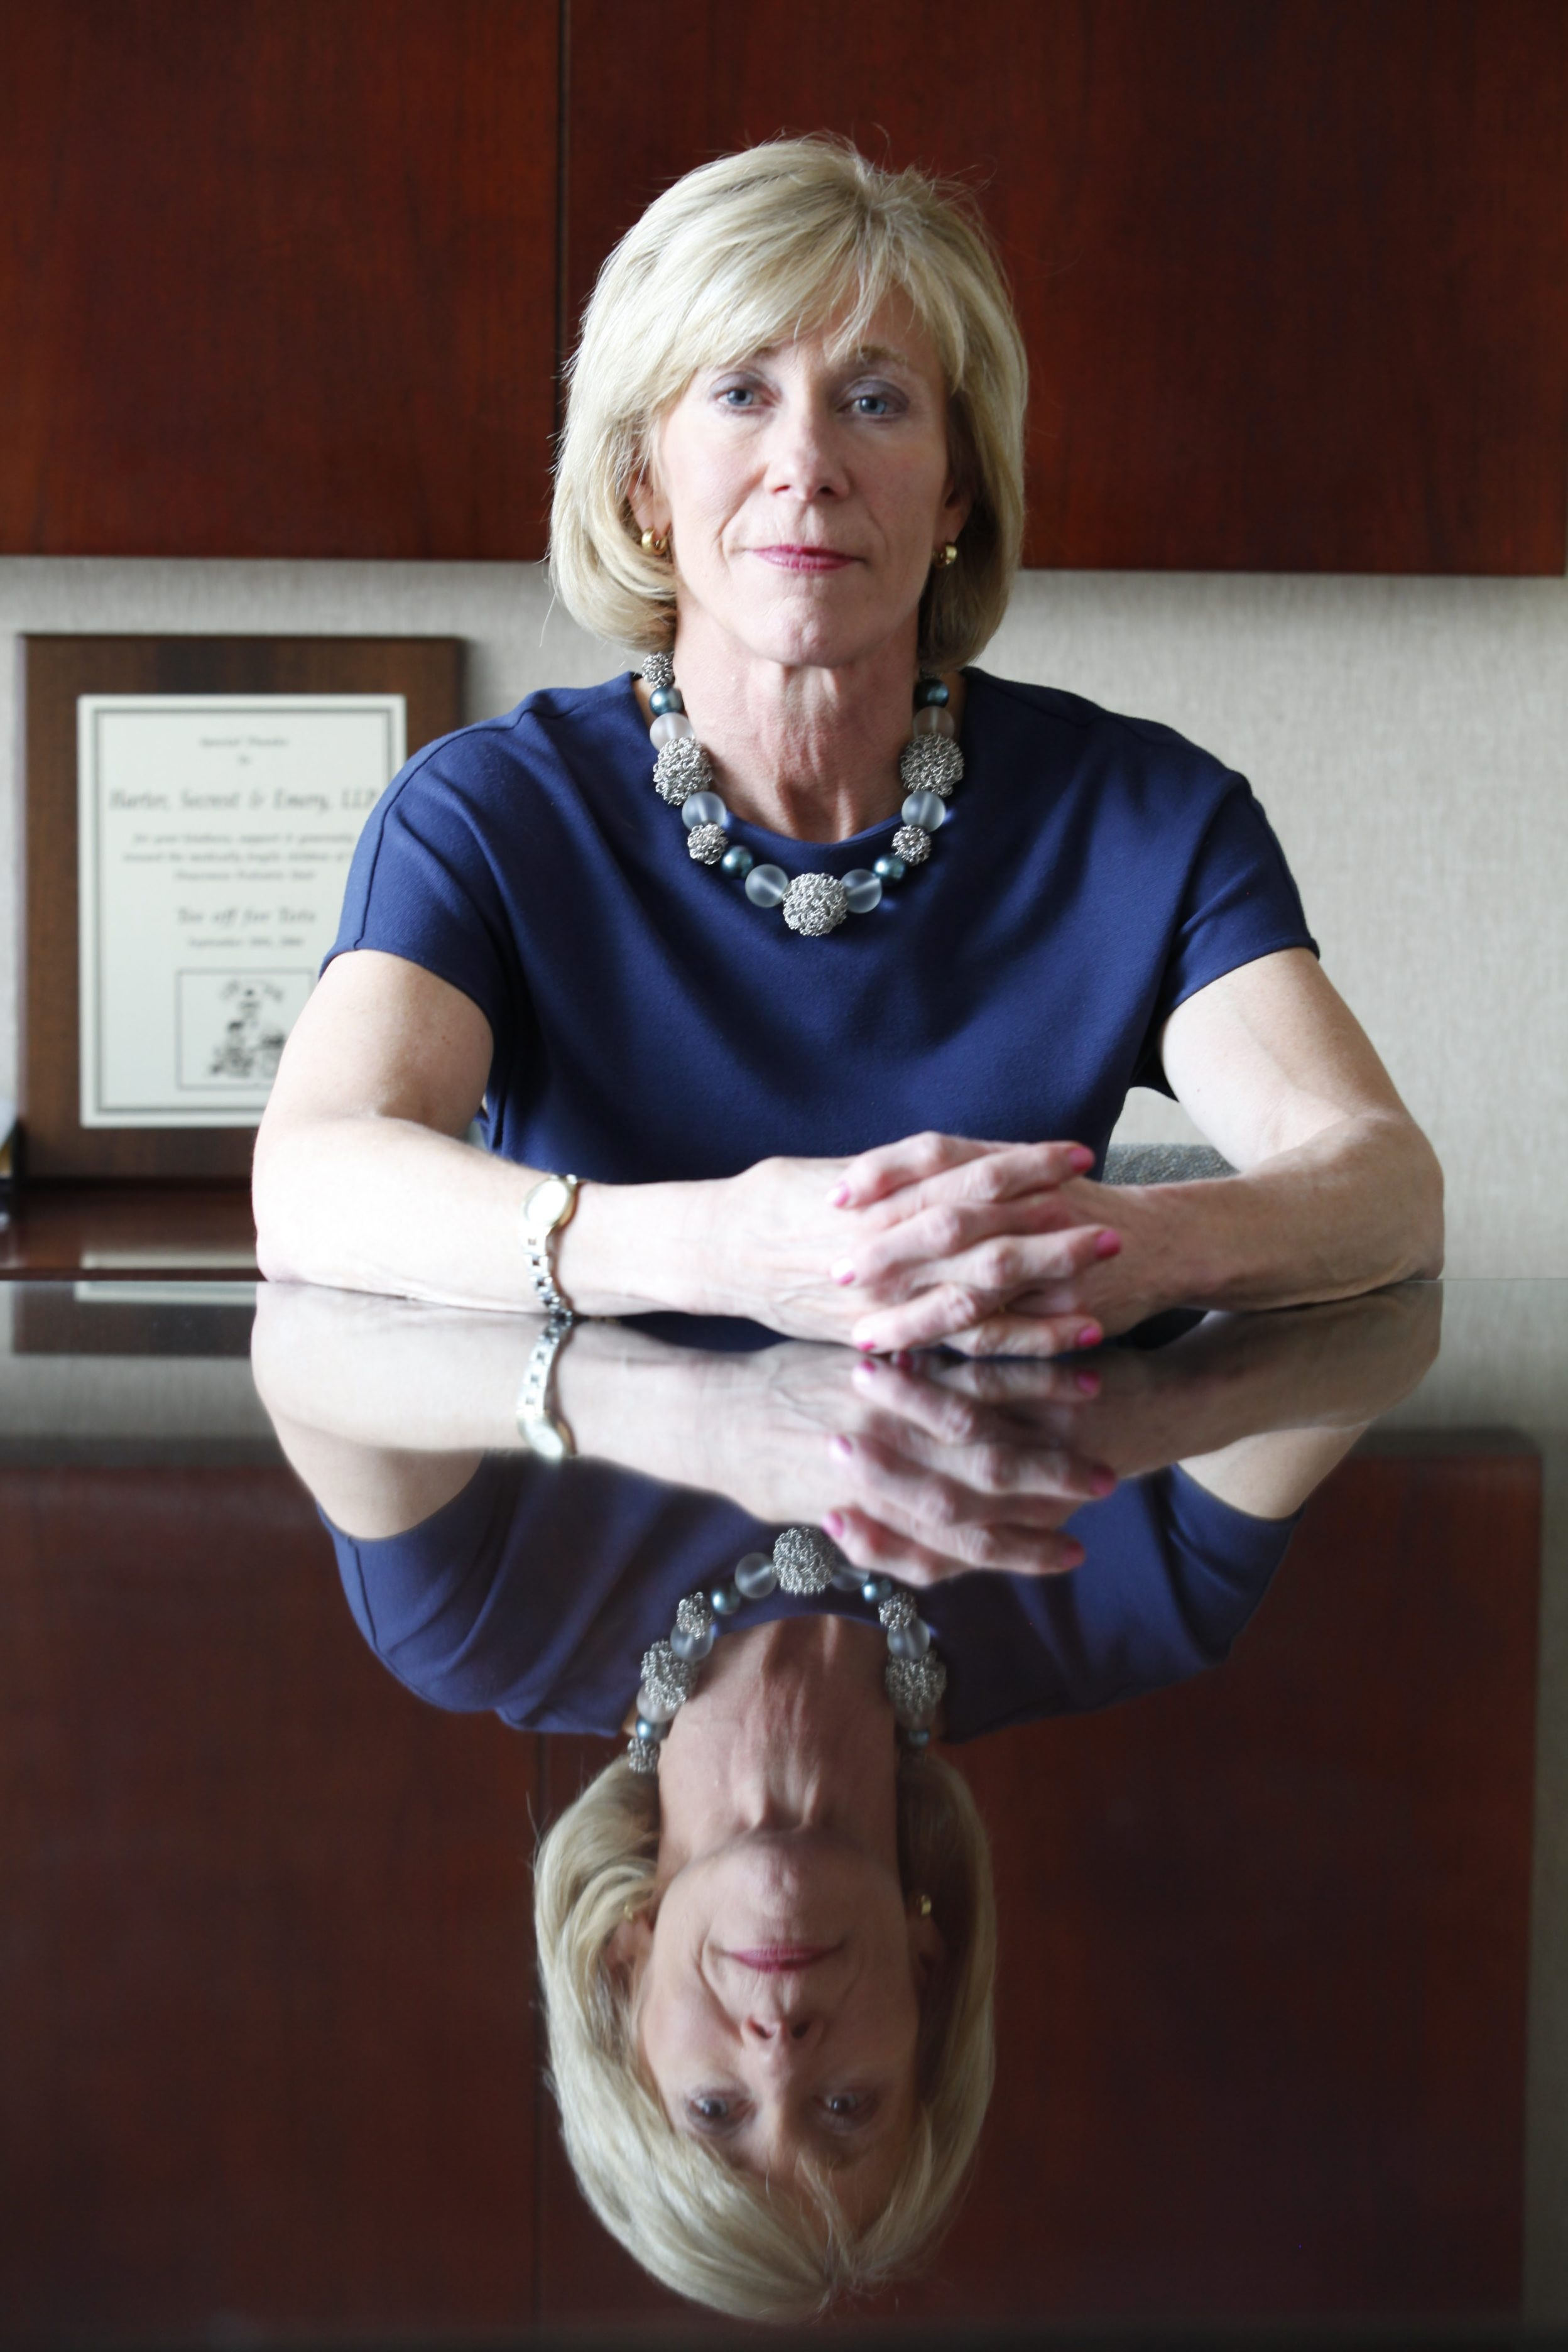 Prominent business lawyer Carol E. Heckman, a former U.S. magistrate judge, says businesses today face more liability than they have in the past.